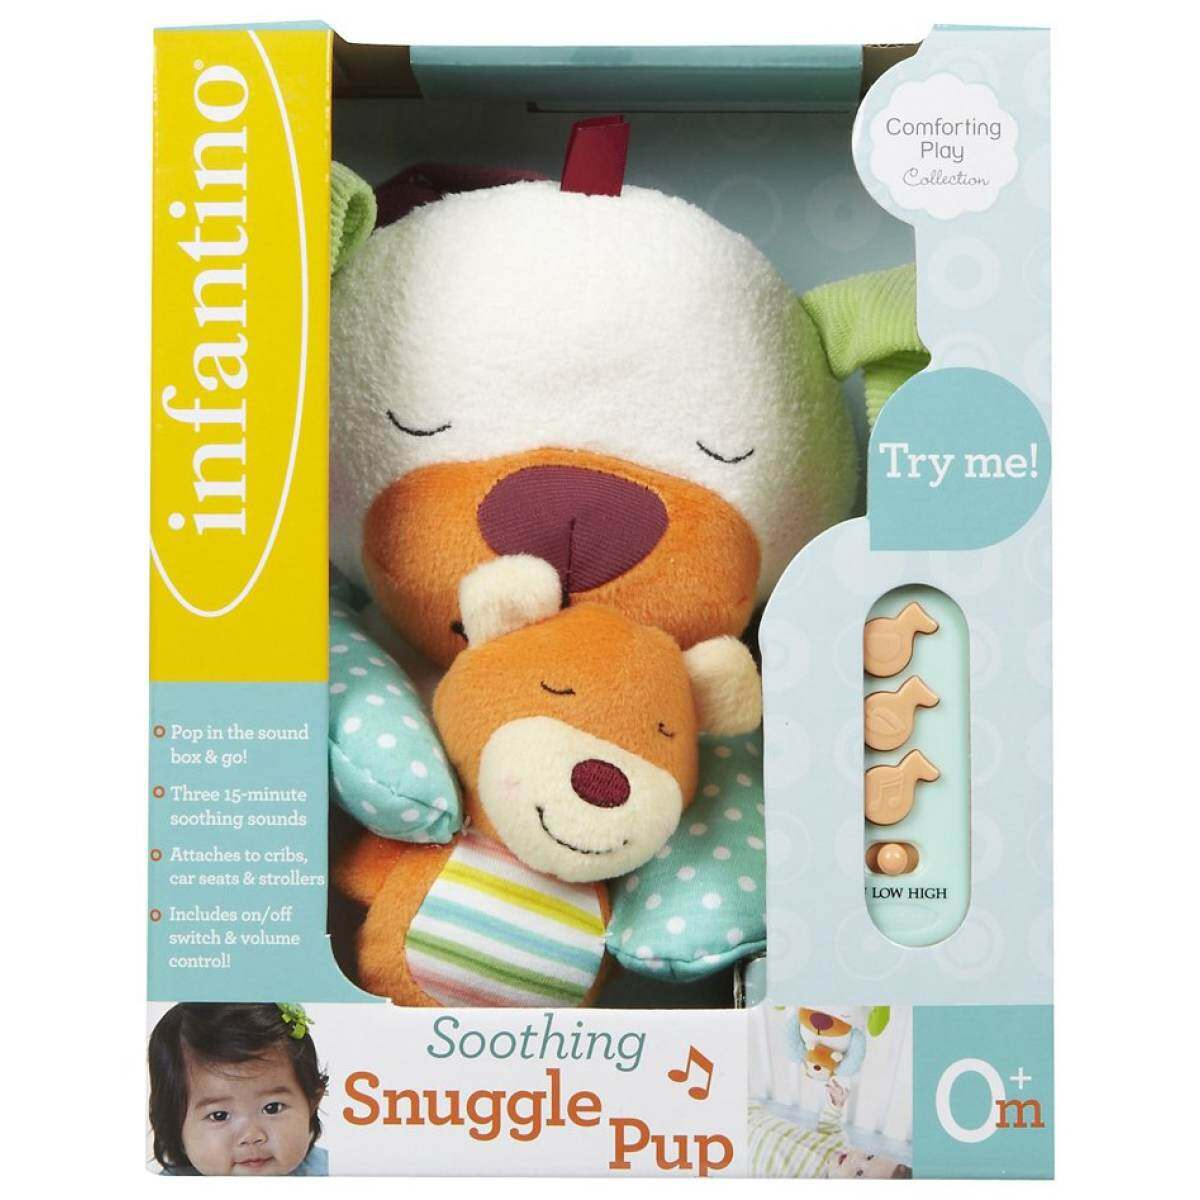 Infantino Baby Soothing Good Night Music Play Snuggle Pup Stroller Cribs Car Seat Toy Easy Washable